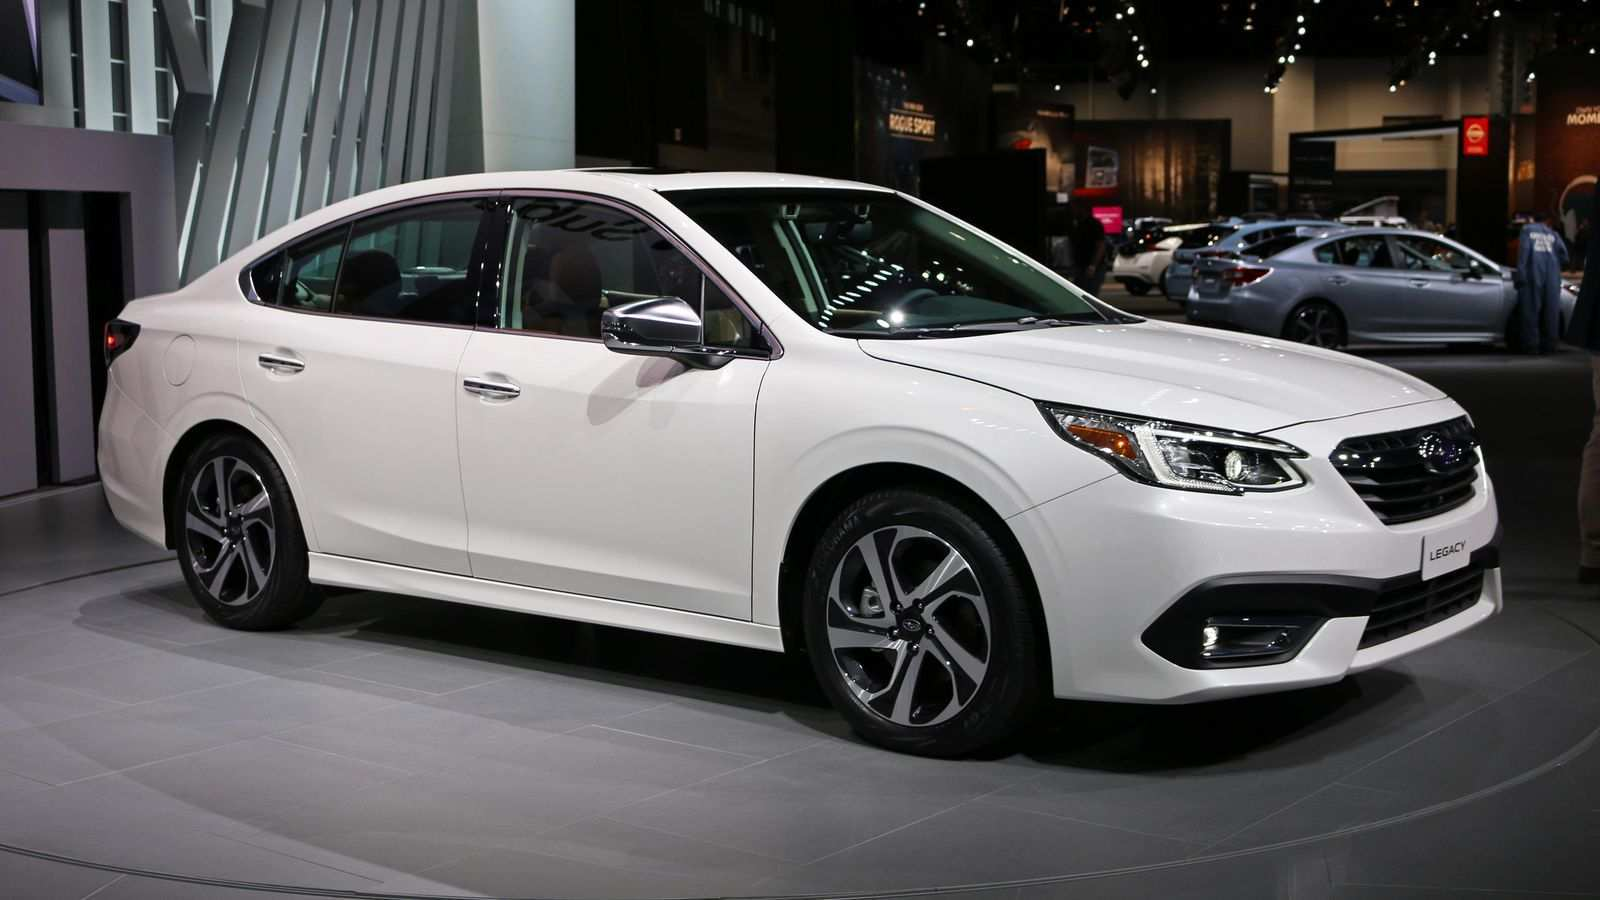 15 Best 2020 Subaru Legacy Price Design And Review